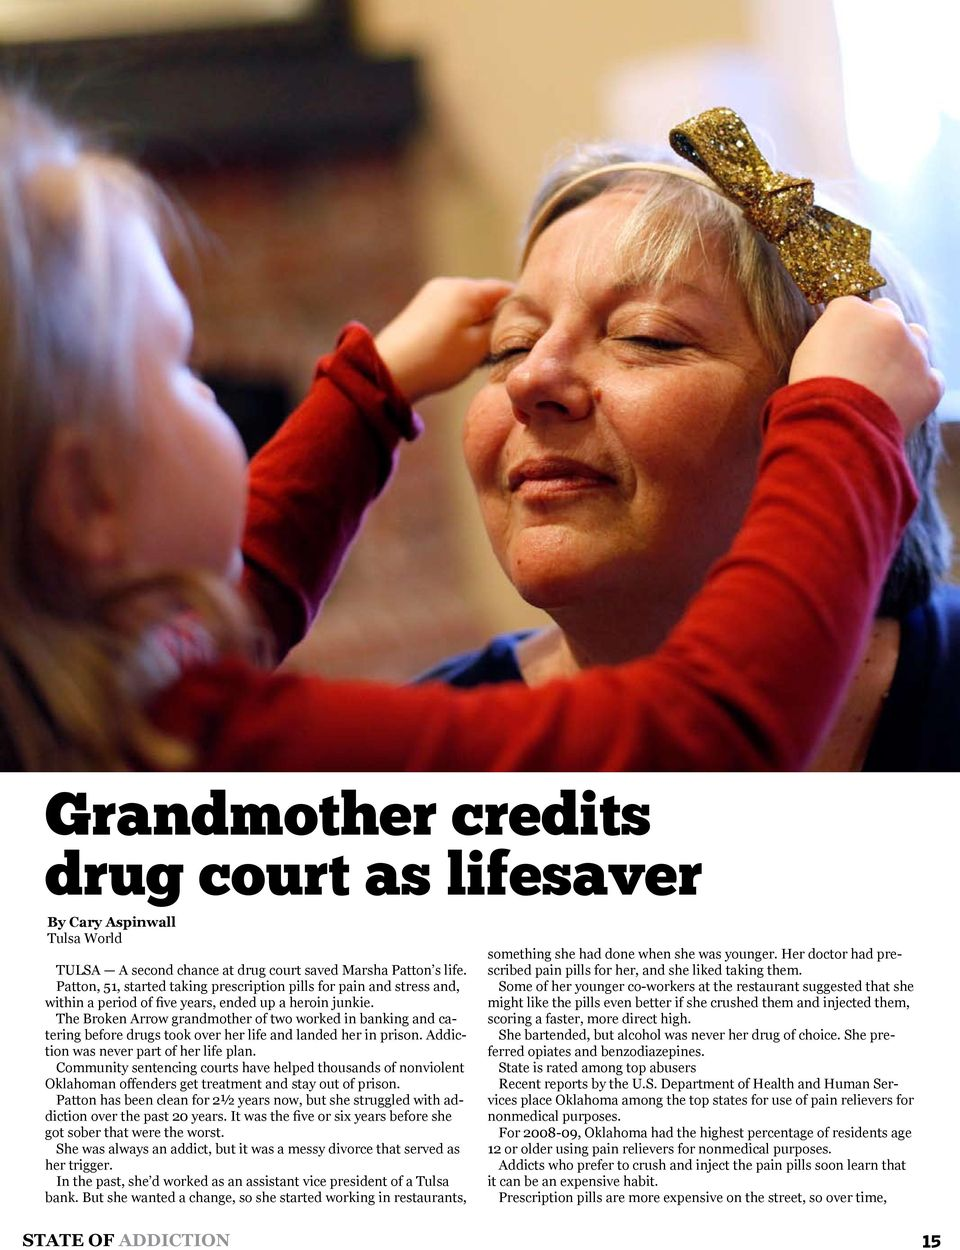 The Broken Arrow grandmother of two worked in banking and catering before drugs took over her life and landed her in prison. Addiction was never part of her life plan.